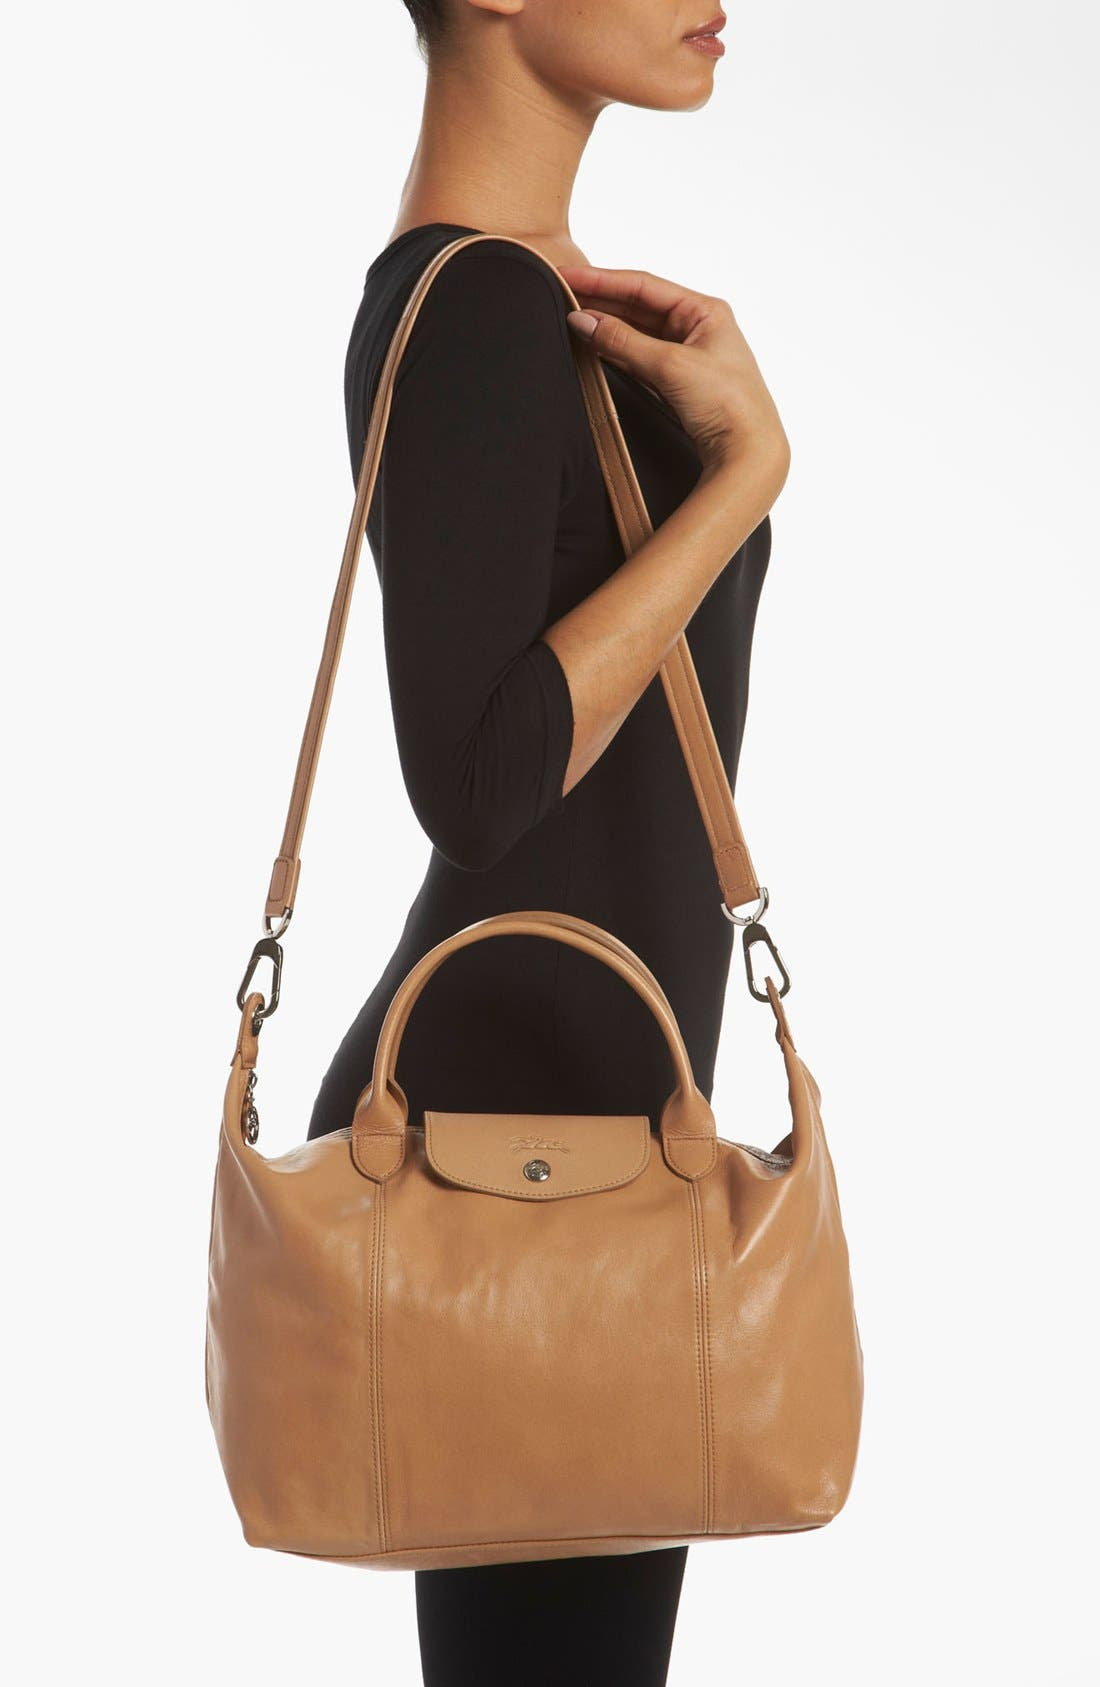 Medium 'Le Pliage Cuir' Leather Top Handle Tote,                             Alternate thumbnail 60, color,